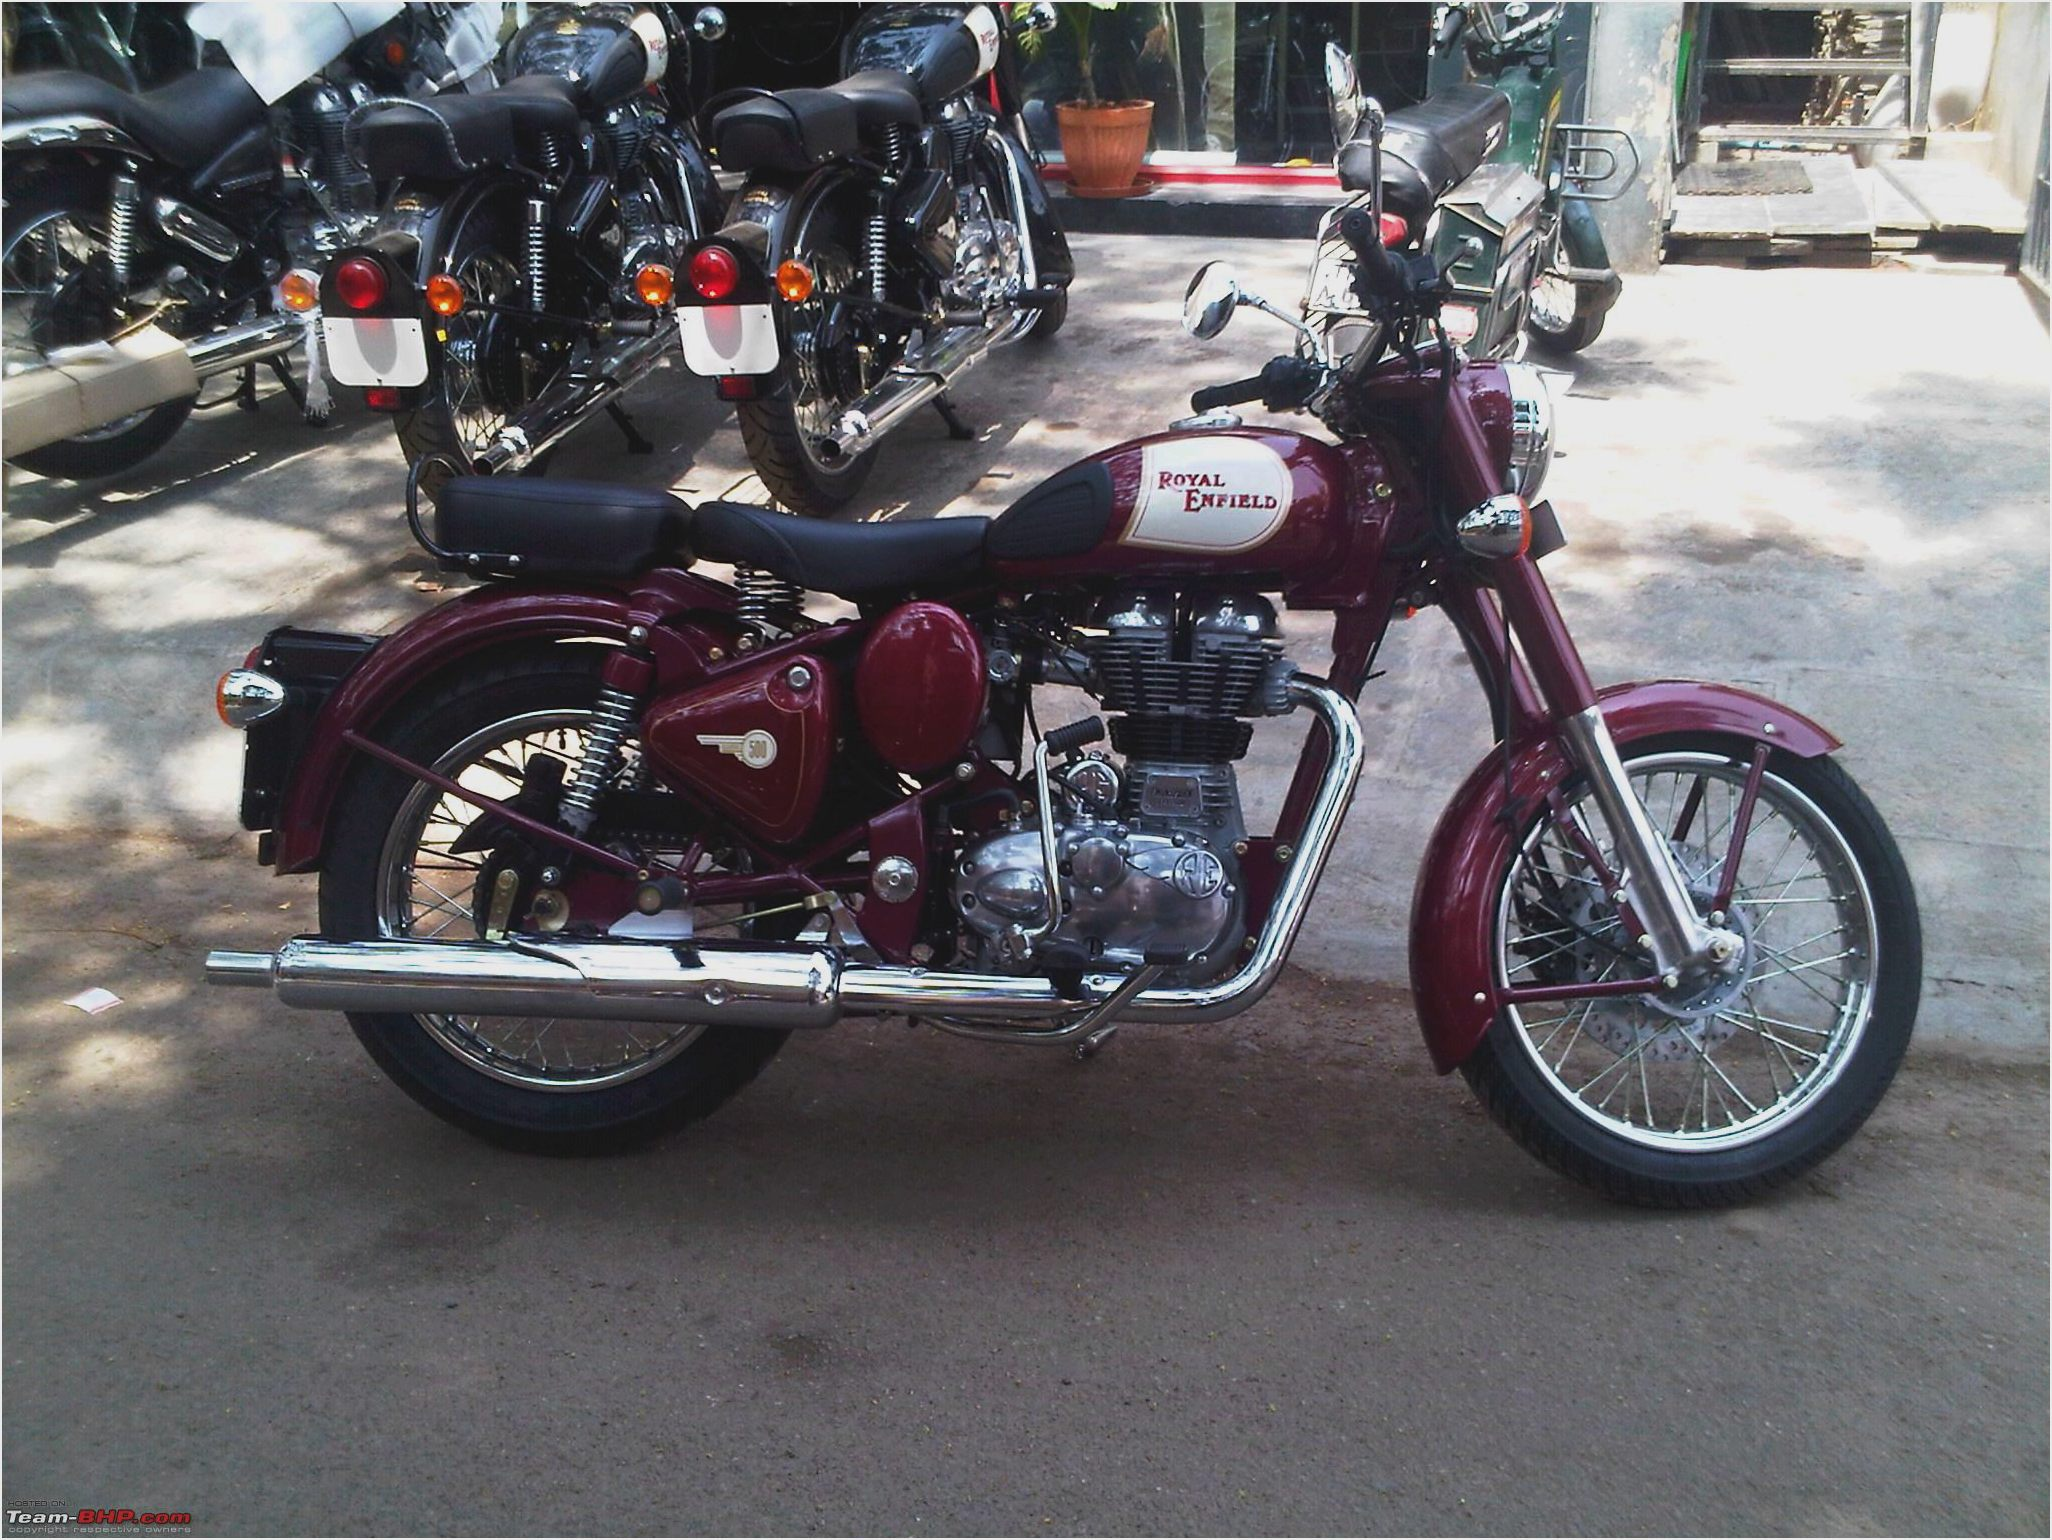 Royal Enfield Bullet 350 Classic 2005 images #123534